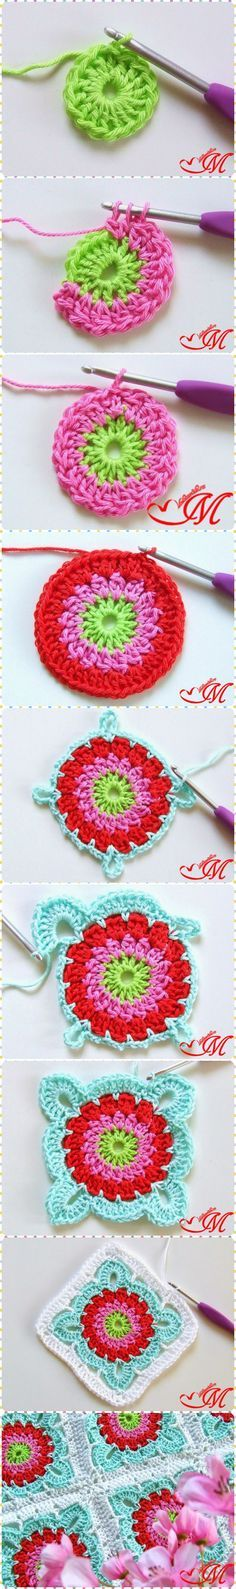 How to Crochet Granny Square Blanket How to Crochet Pretty Granny Square Blanke. How to Crochet Granny Square Blanket How to Crochet Pretty Granny Square Blanket with Free Pattern Granny Square Crochet Pattern, Crochet Blocks, Crochet Flower Patterns, Crochet Squares, Knit Or Crochet, Crochet Motif, Crochet Crafts, Crochet Flowers, Crochet Projects